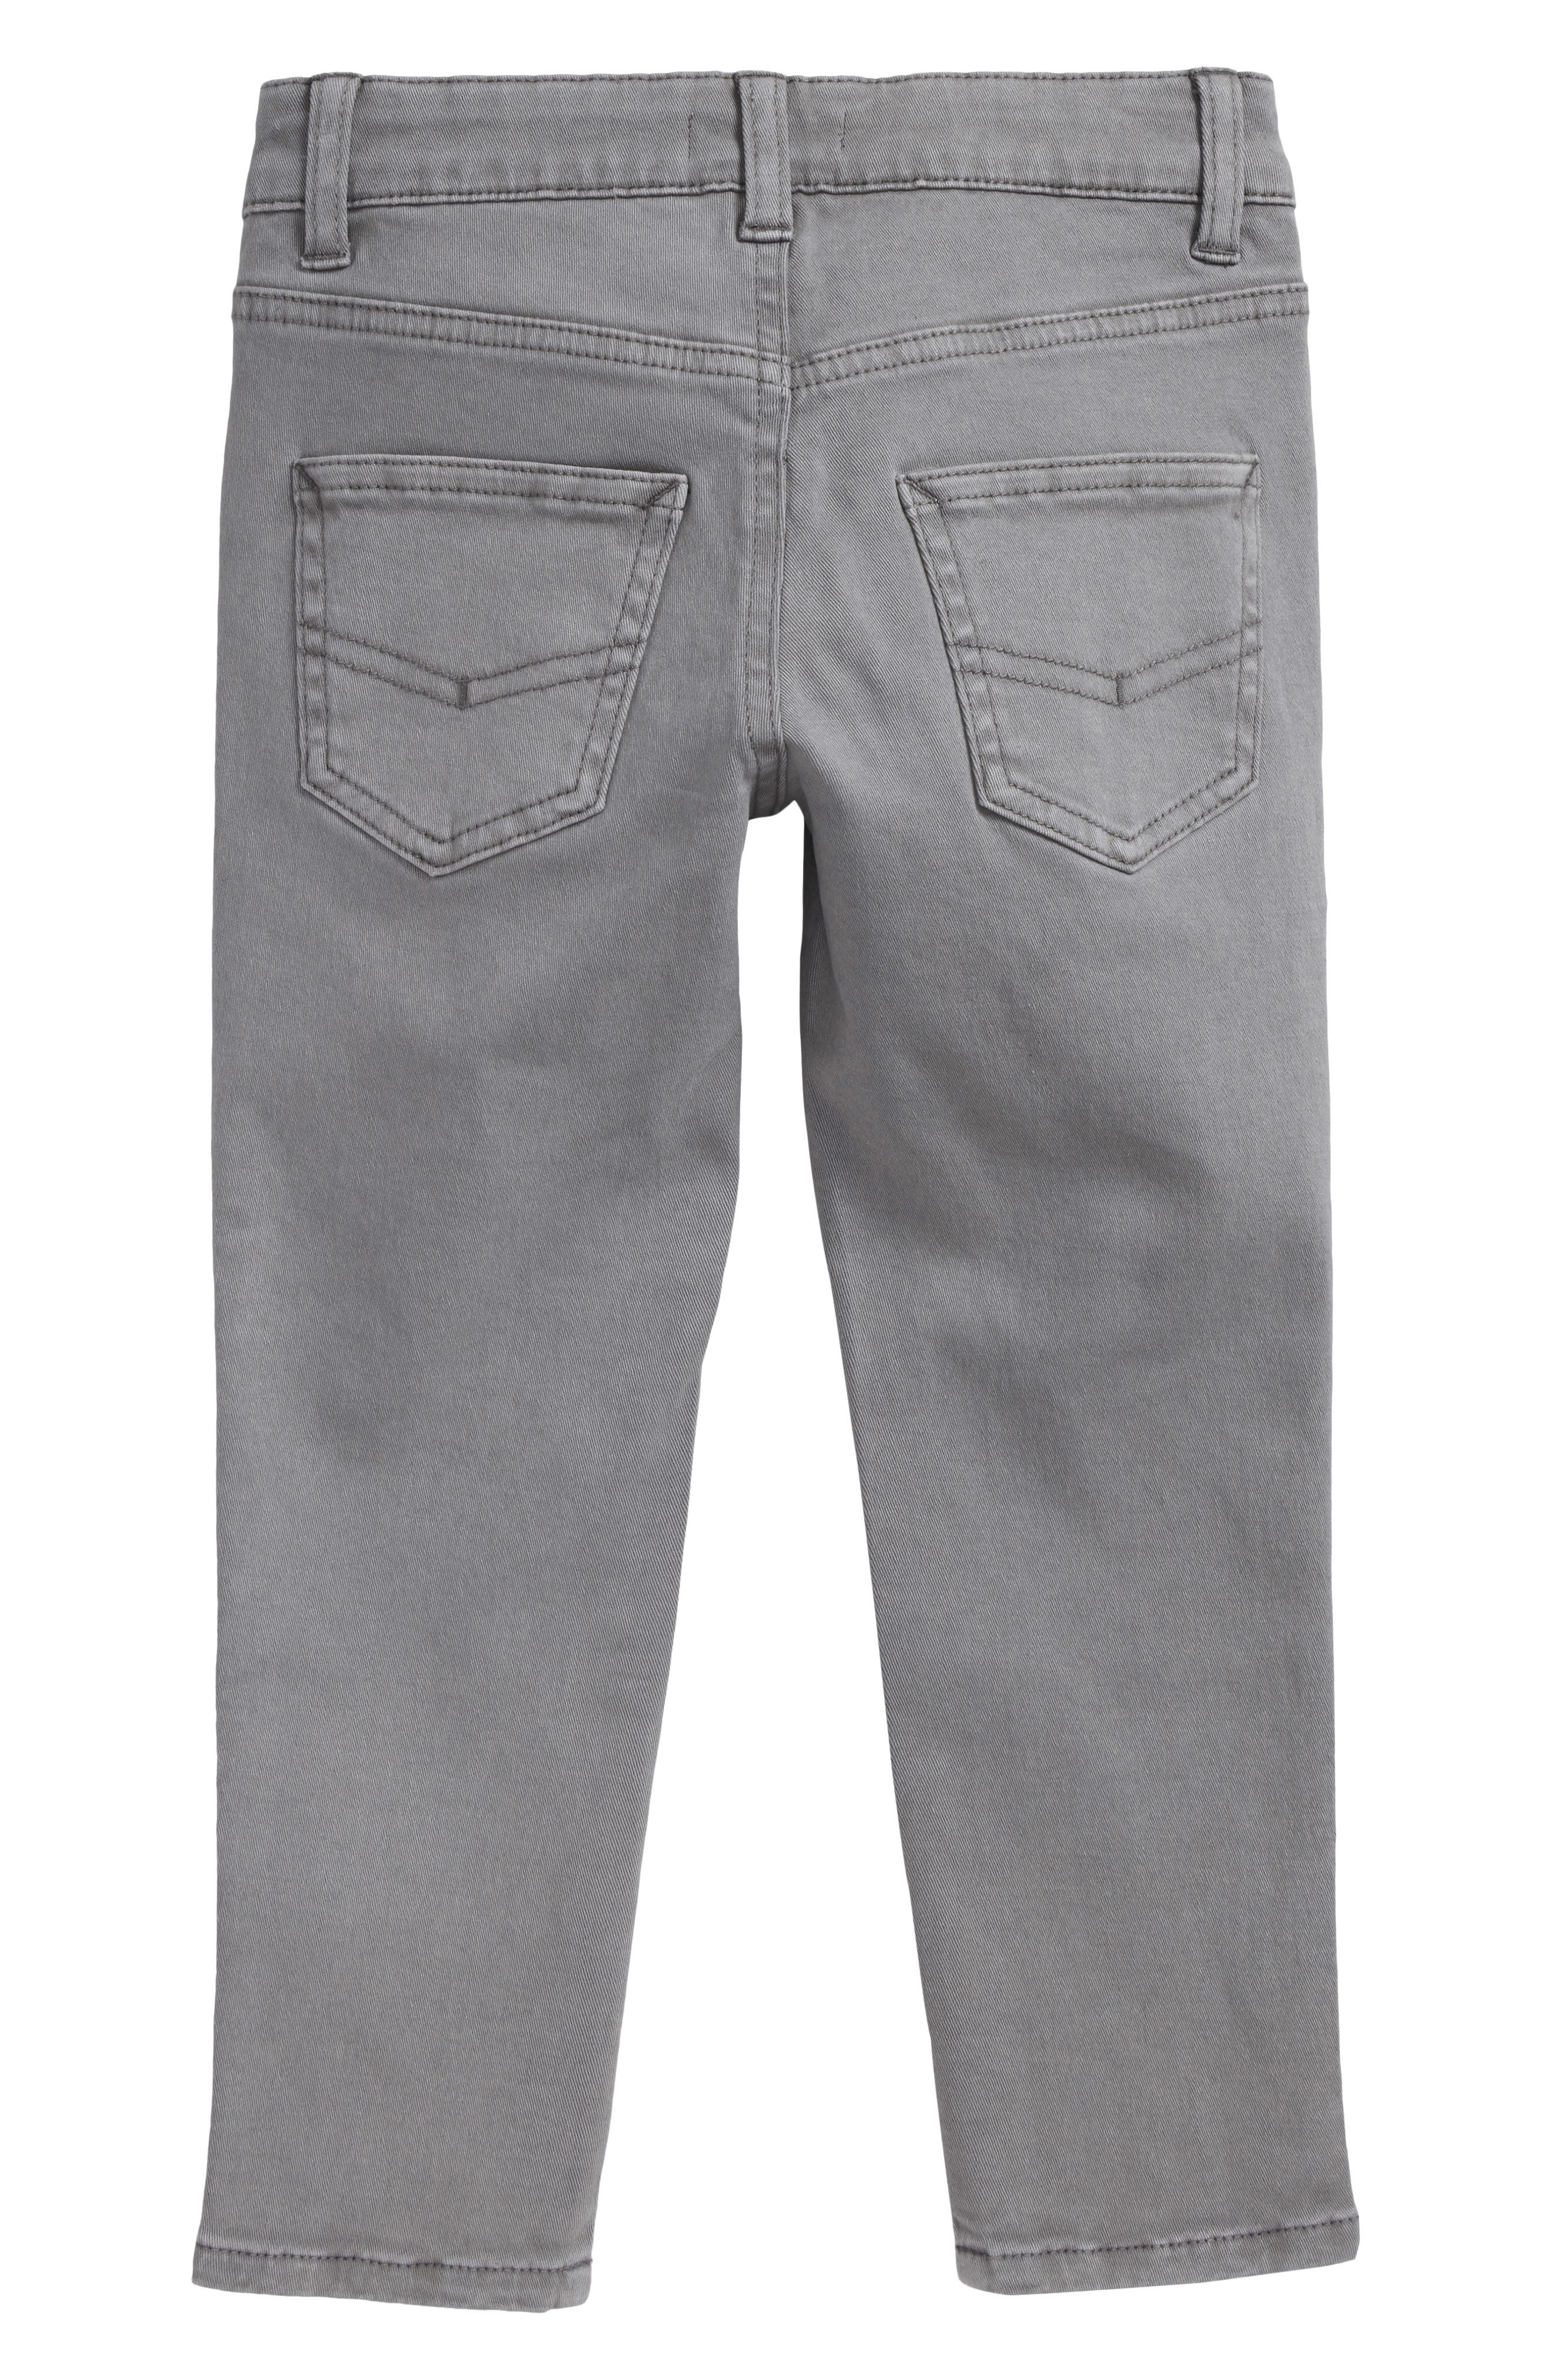 Stretch Chino Pants,                             Alternate thumbnail 2, color,                             030